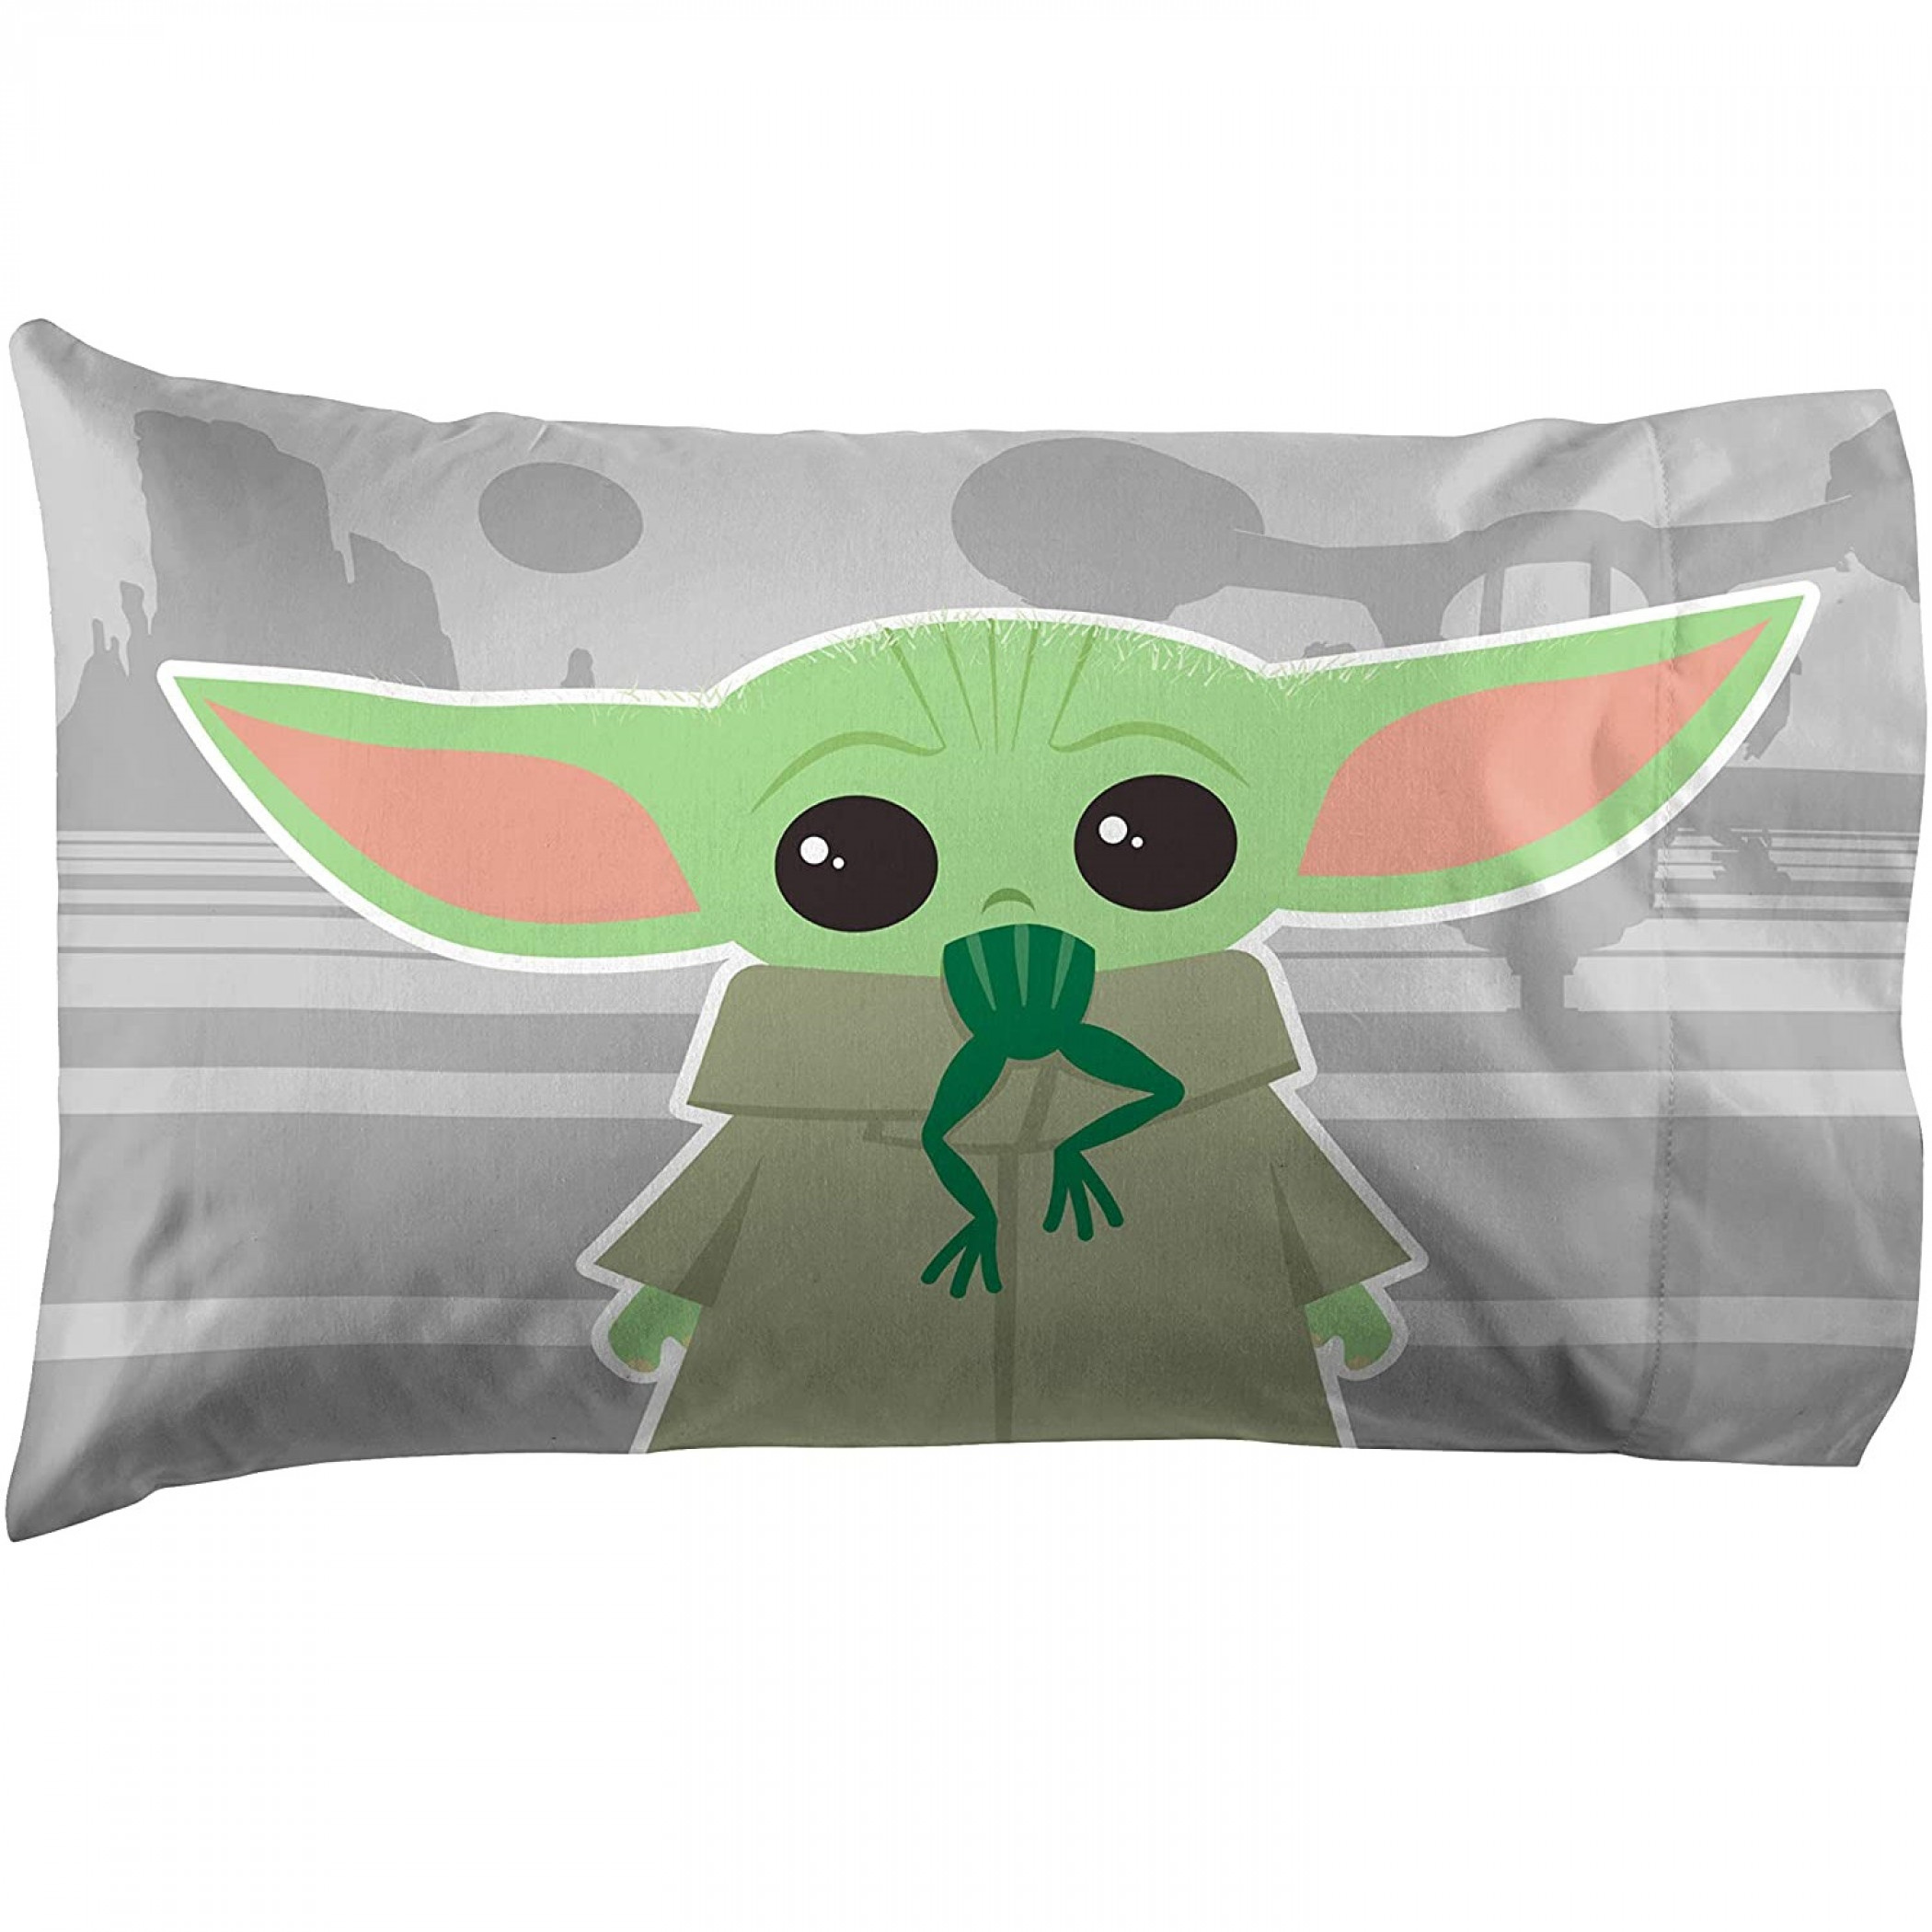 Star Wars The Mandalorian The Cutest Bounty Reversible Pillowcase